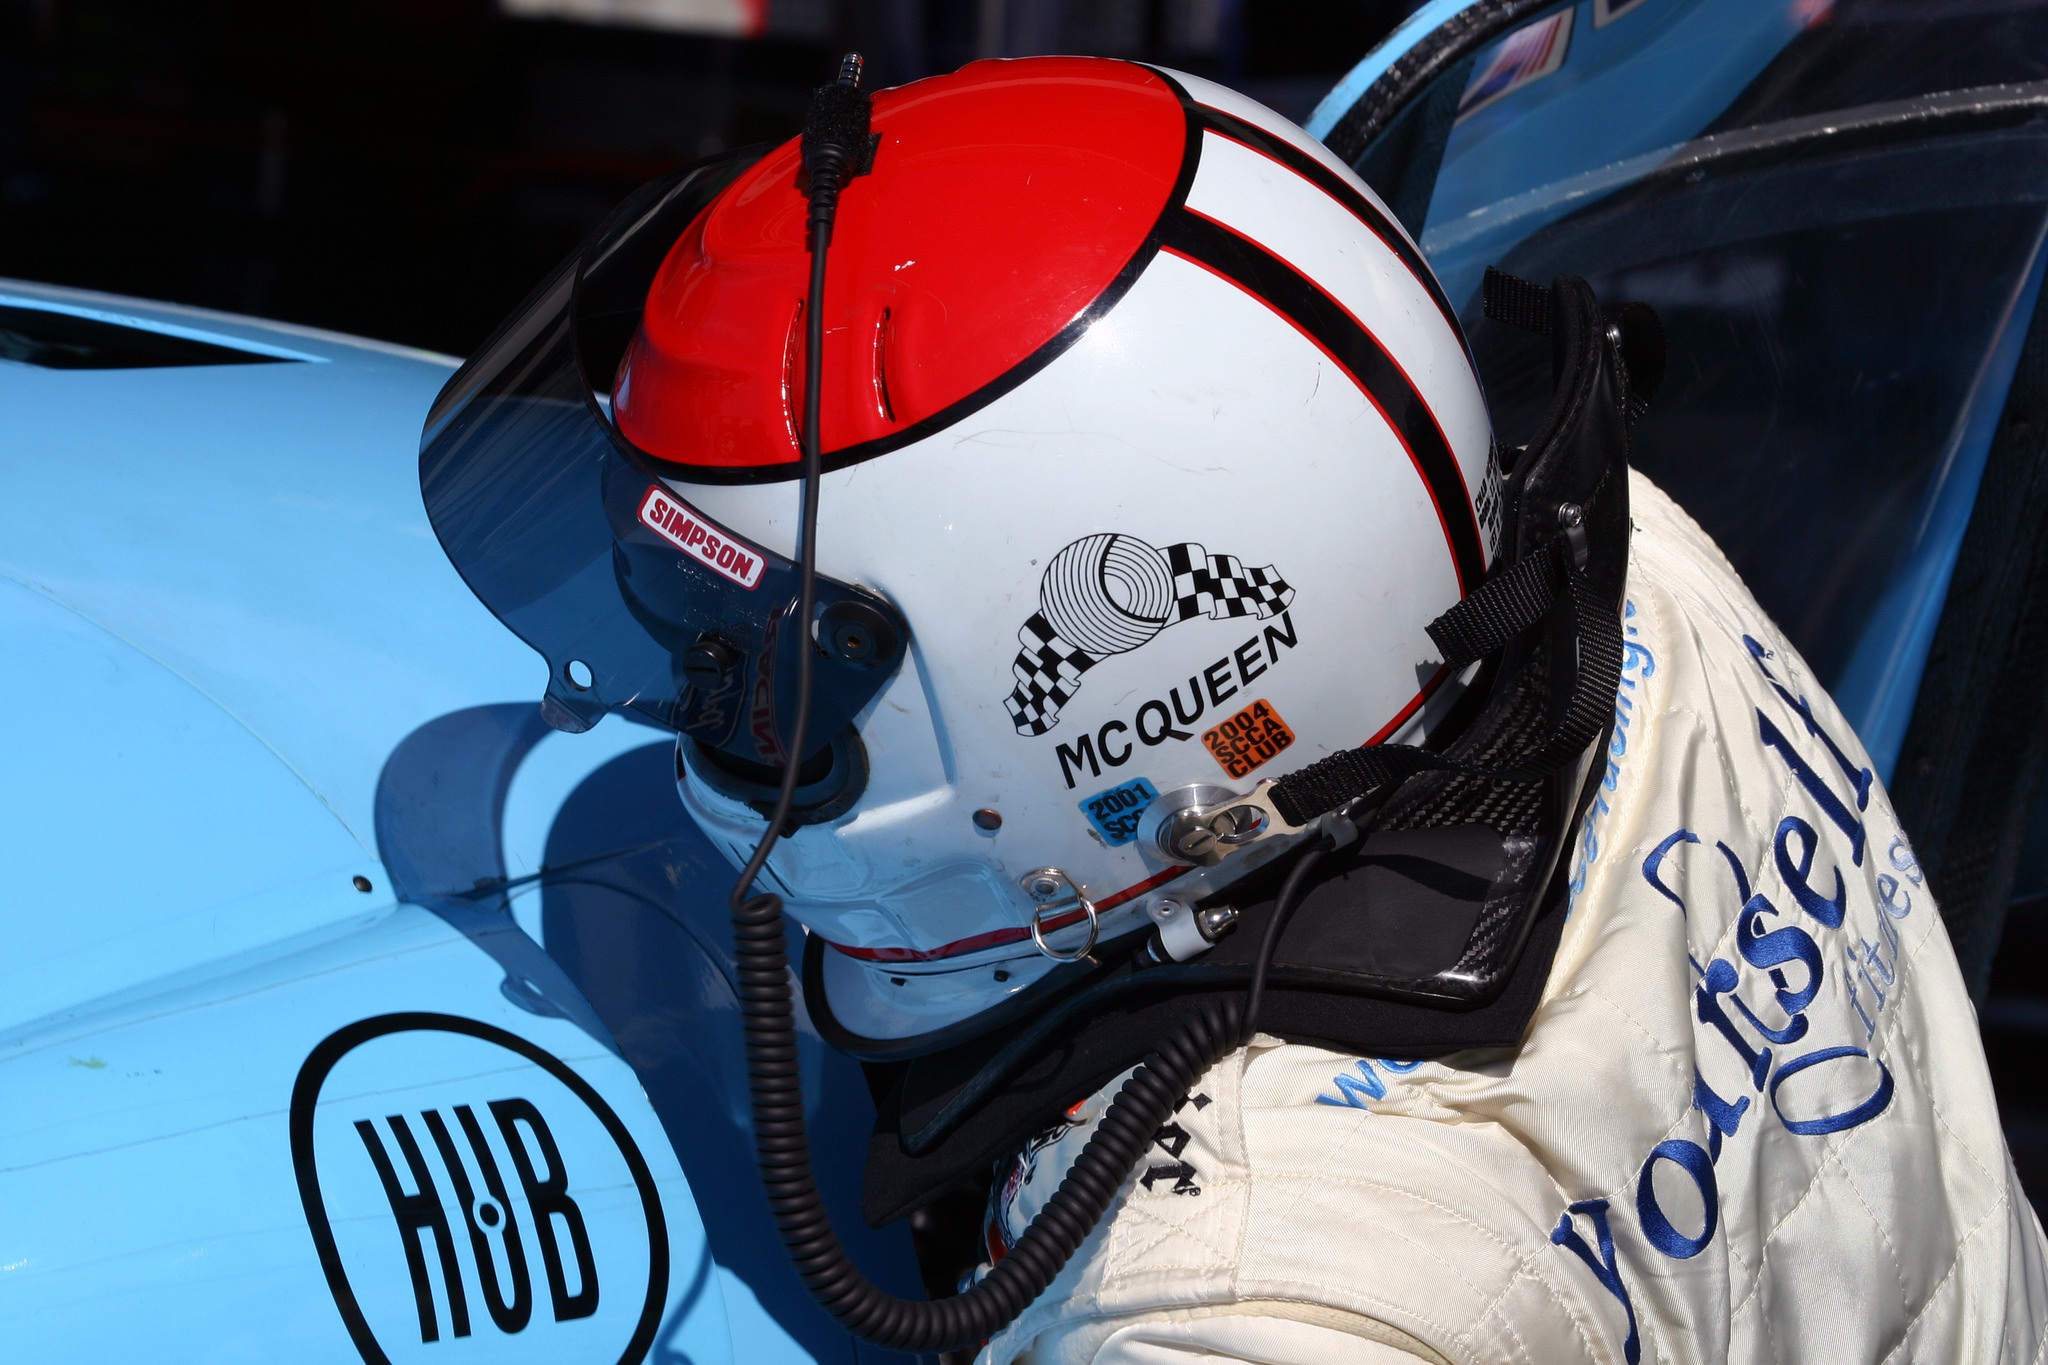 Chad McQueen climbs into the Ford Crawford DP03 for qualifying.